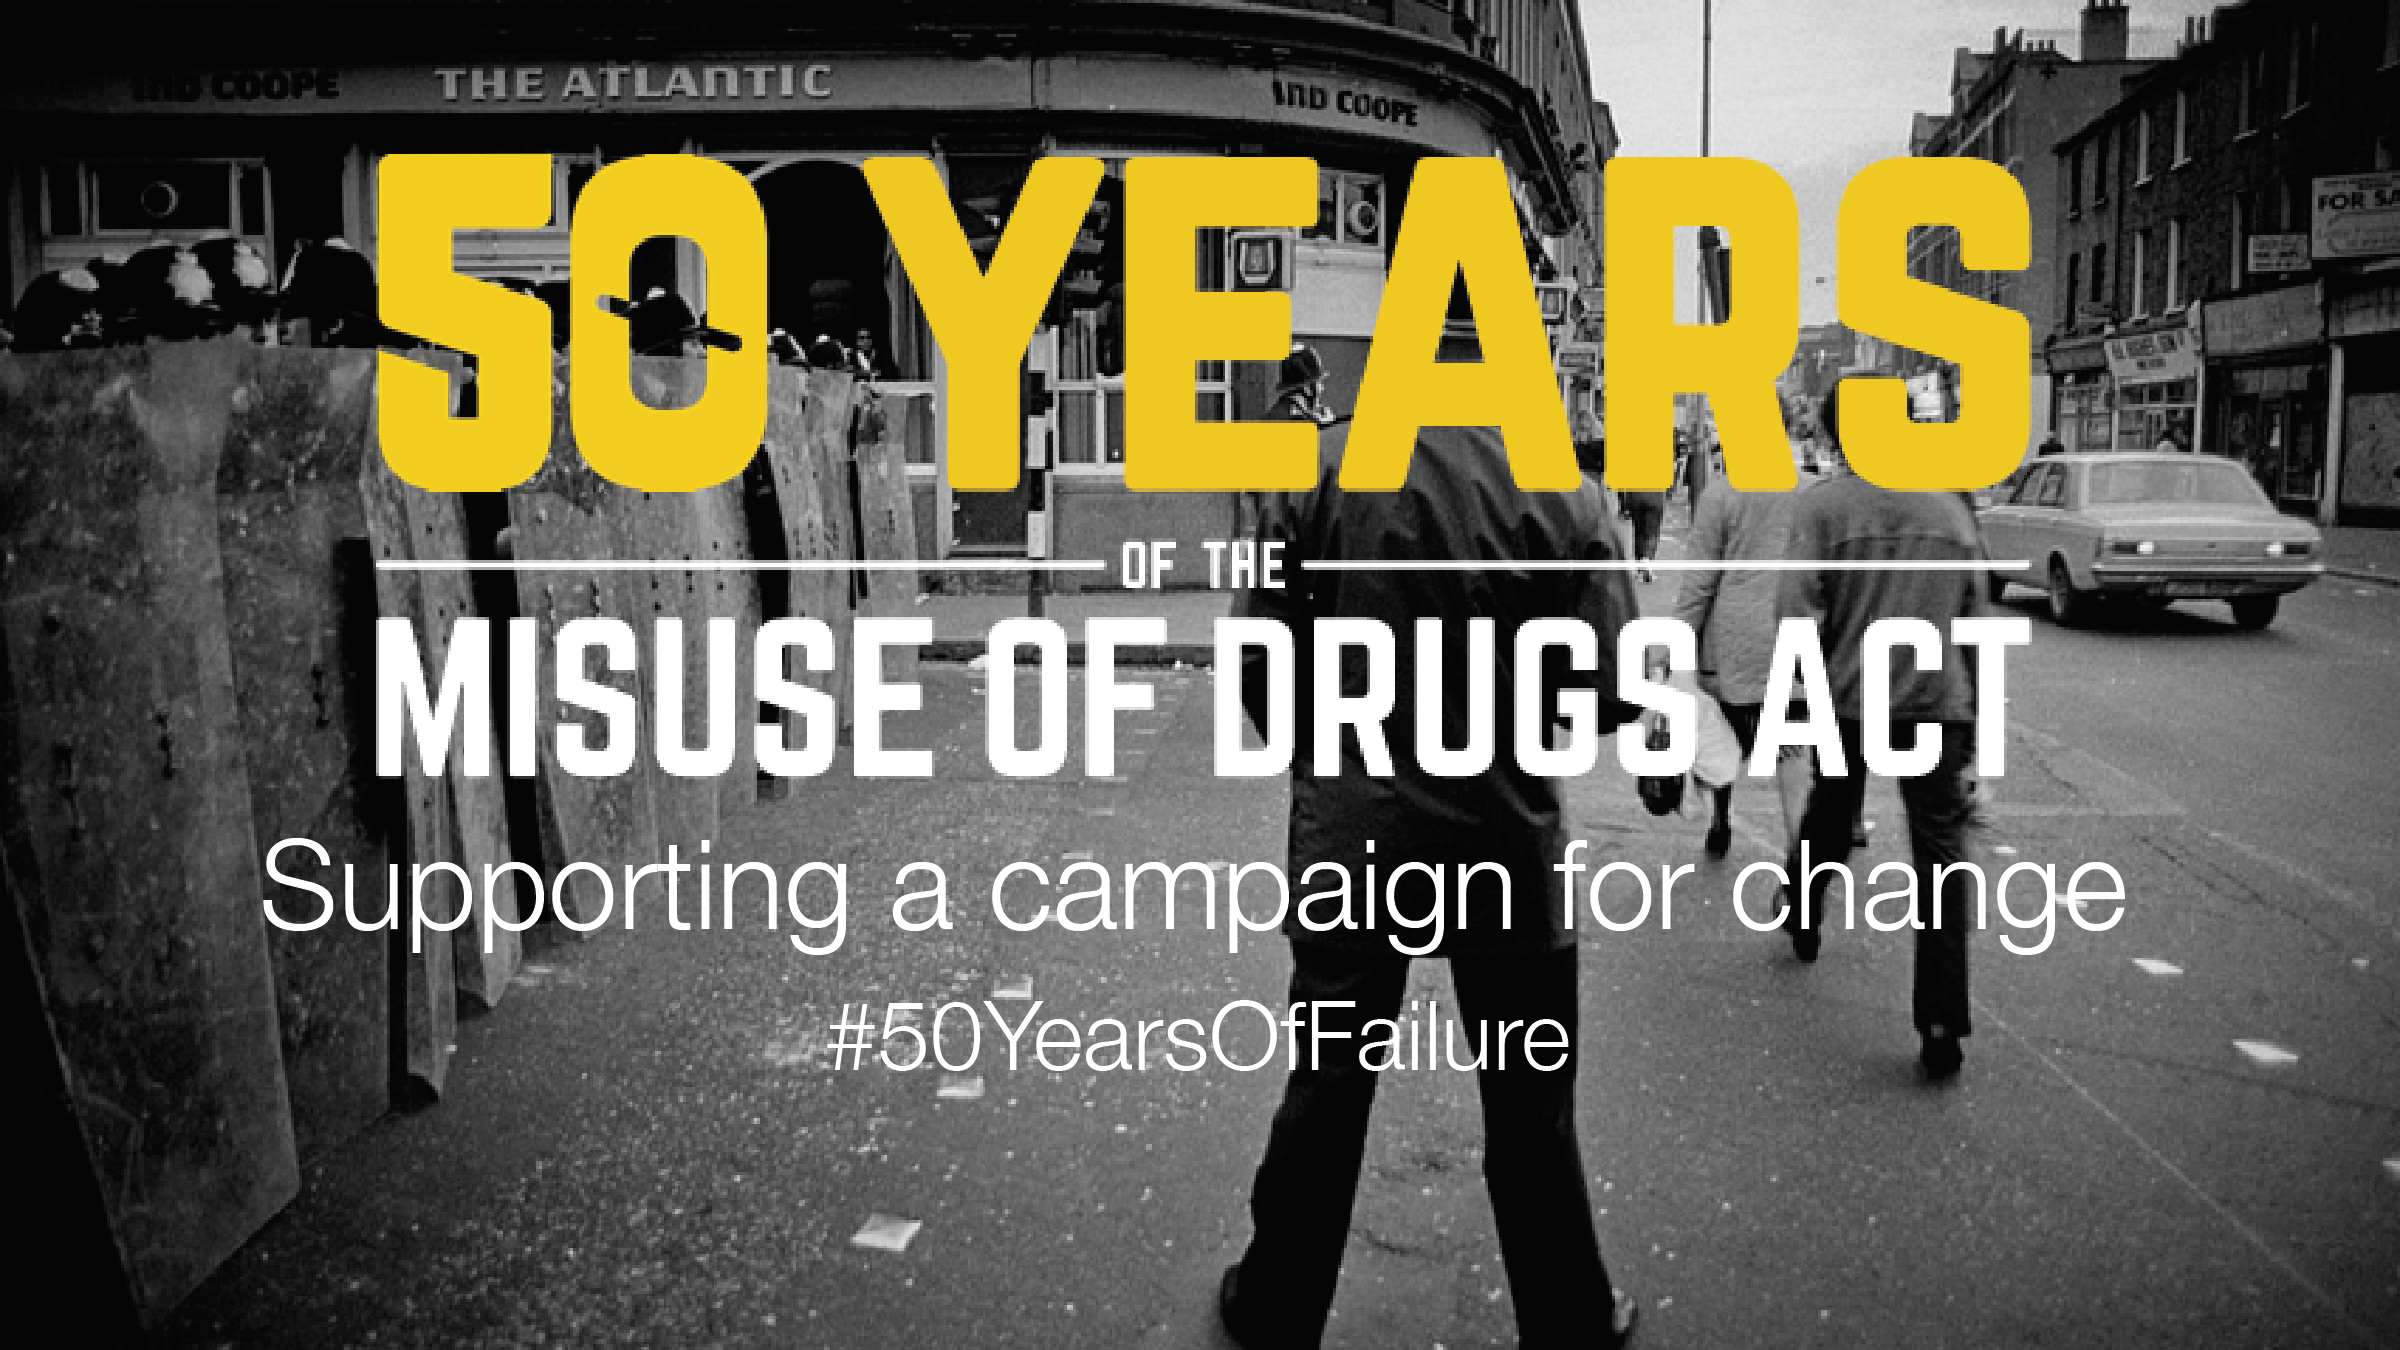 For fifty years the Misuse of Drugs Act has damaged people and communities, undermined science and entrenched social injustice